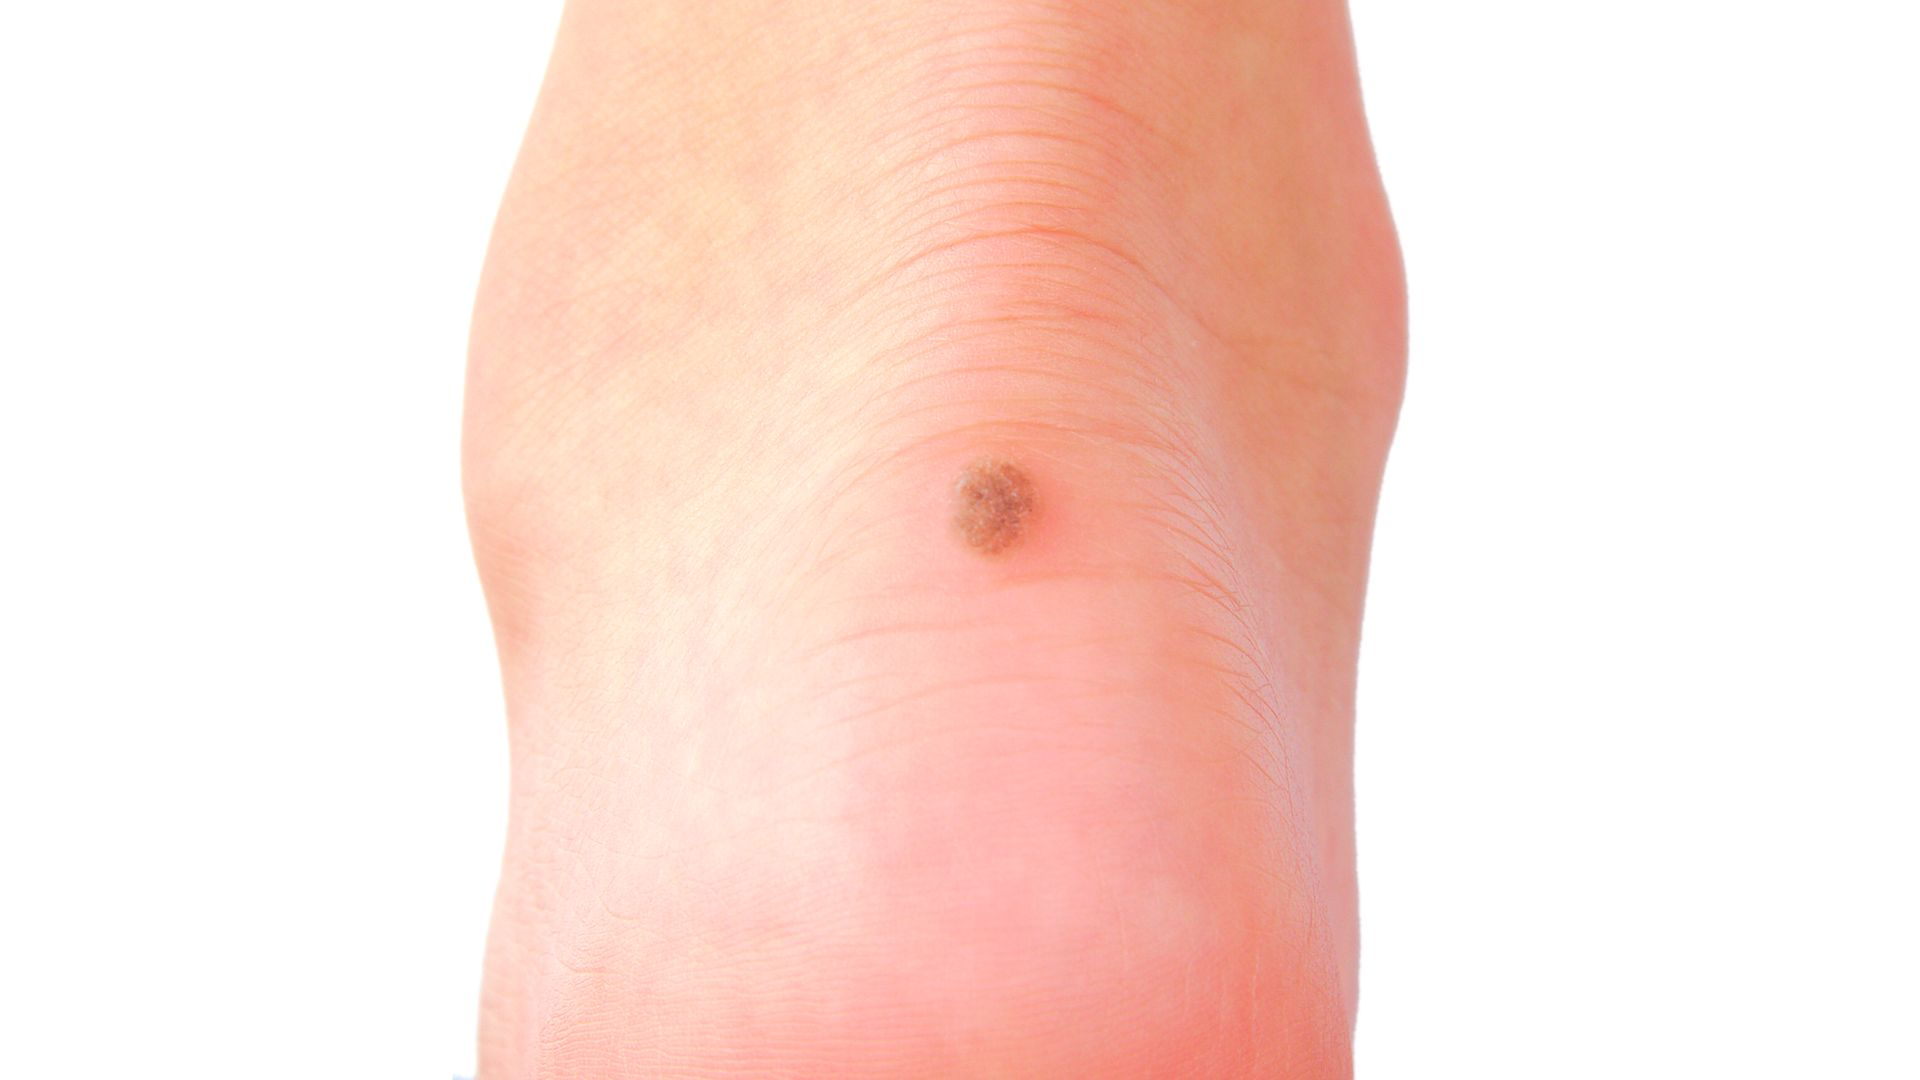 Skin Cancer of the Foot and Ankle